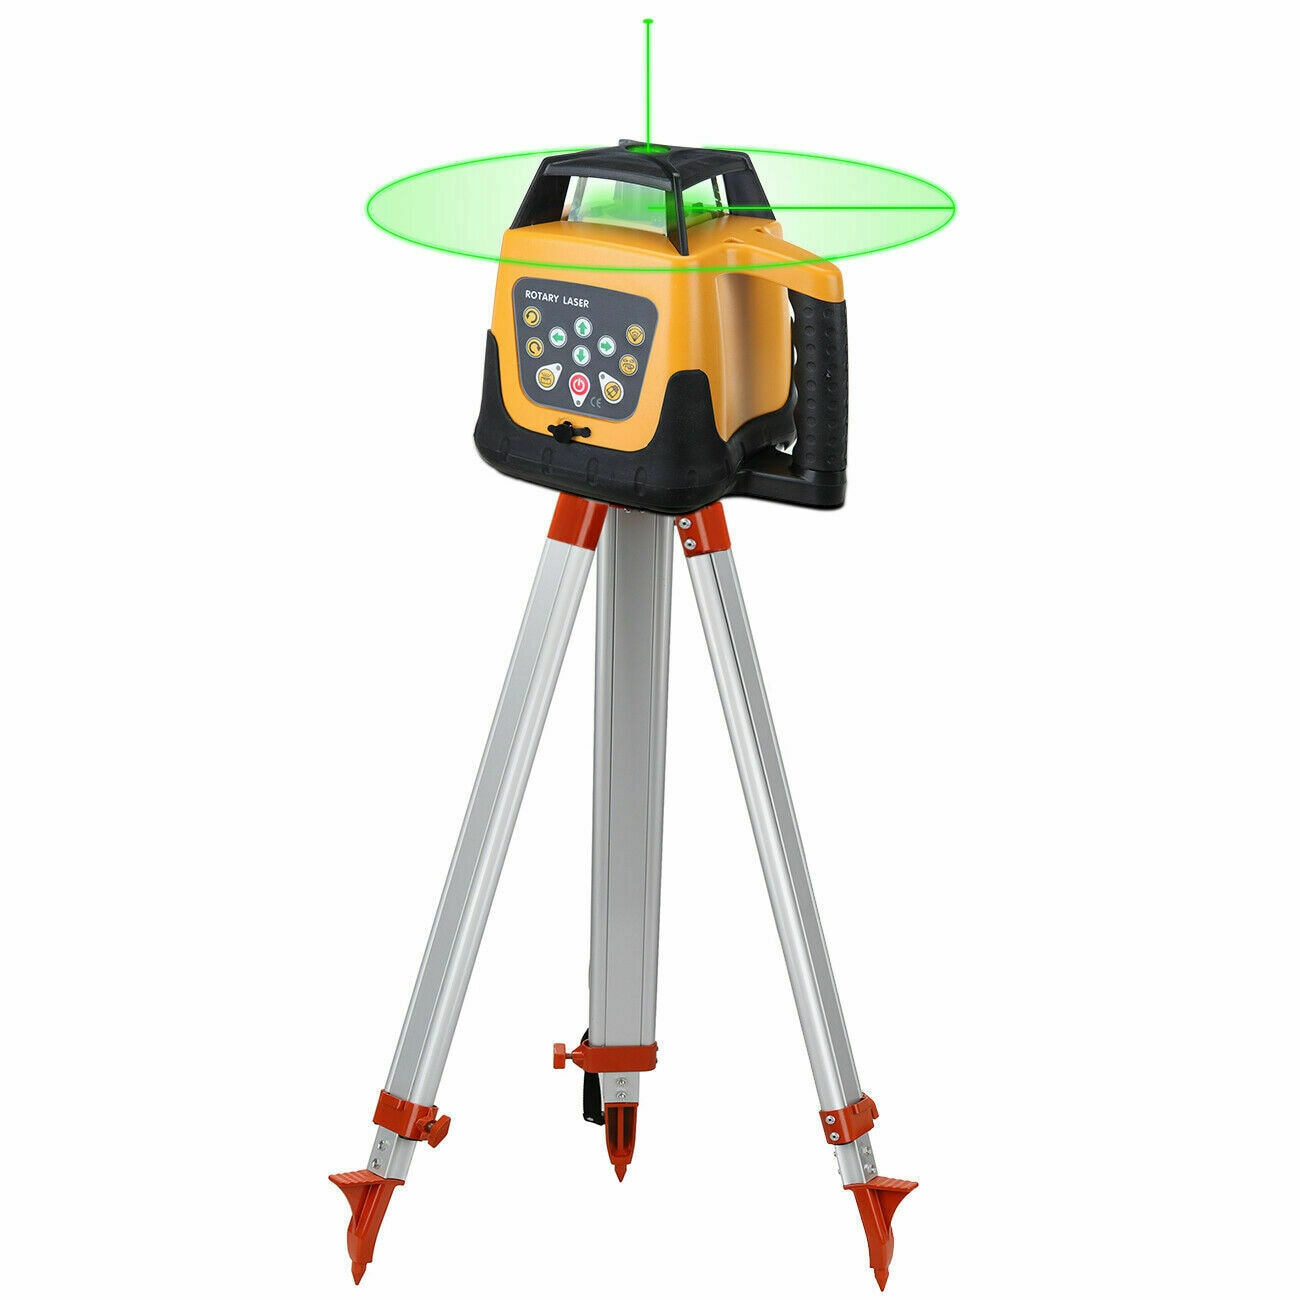 Honhill Laser Level 360 Rotating 500m Range Automatic Self Level Rotating Laser Level+1.65M Tripod+5M Measuring stick Green/Red